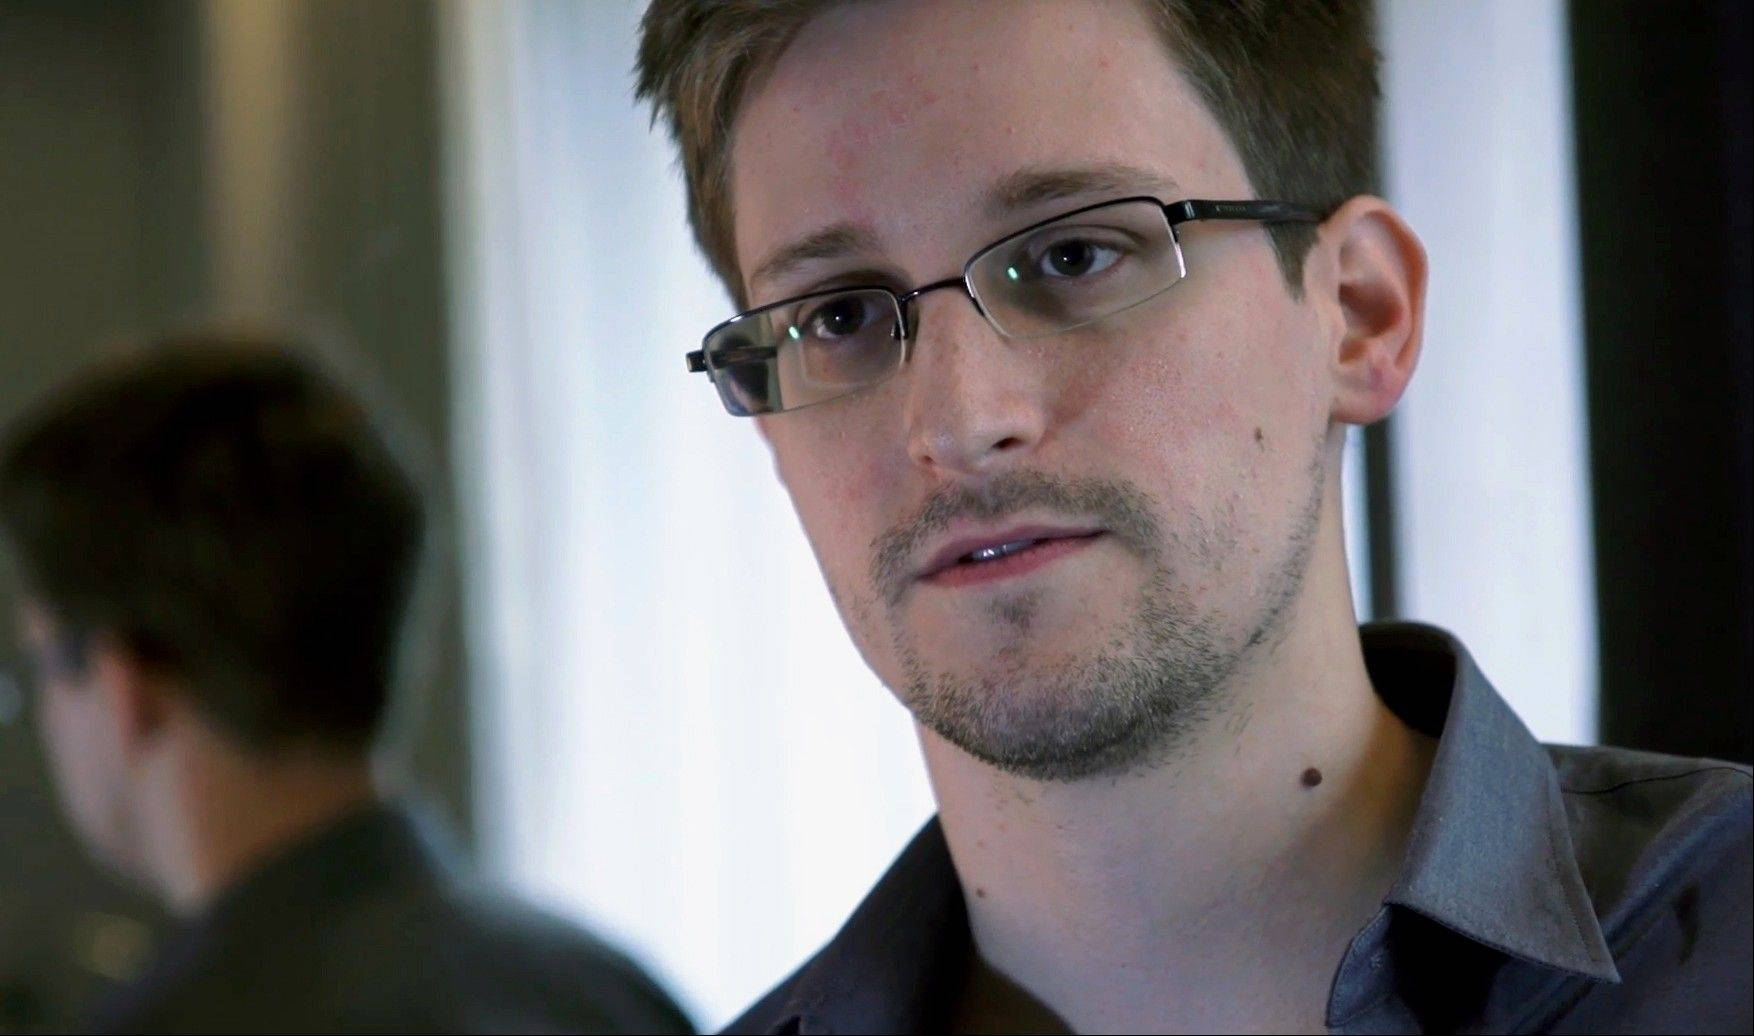 NSA leaker Edward Snowden spent two days in the Russian Consulate in Hong Kong directly before flying to Moscow on what turned out to be an abortive attempt to reach asylum in Latin America, the respected newspaper Kommersant reported Monday, citing unidentified sources in Snowden's circle and the Russian government.